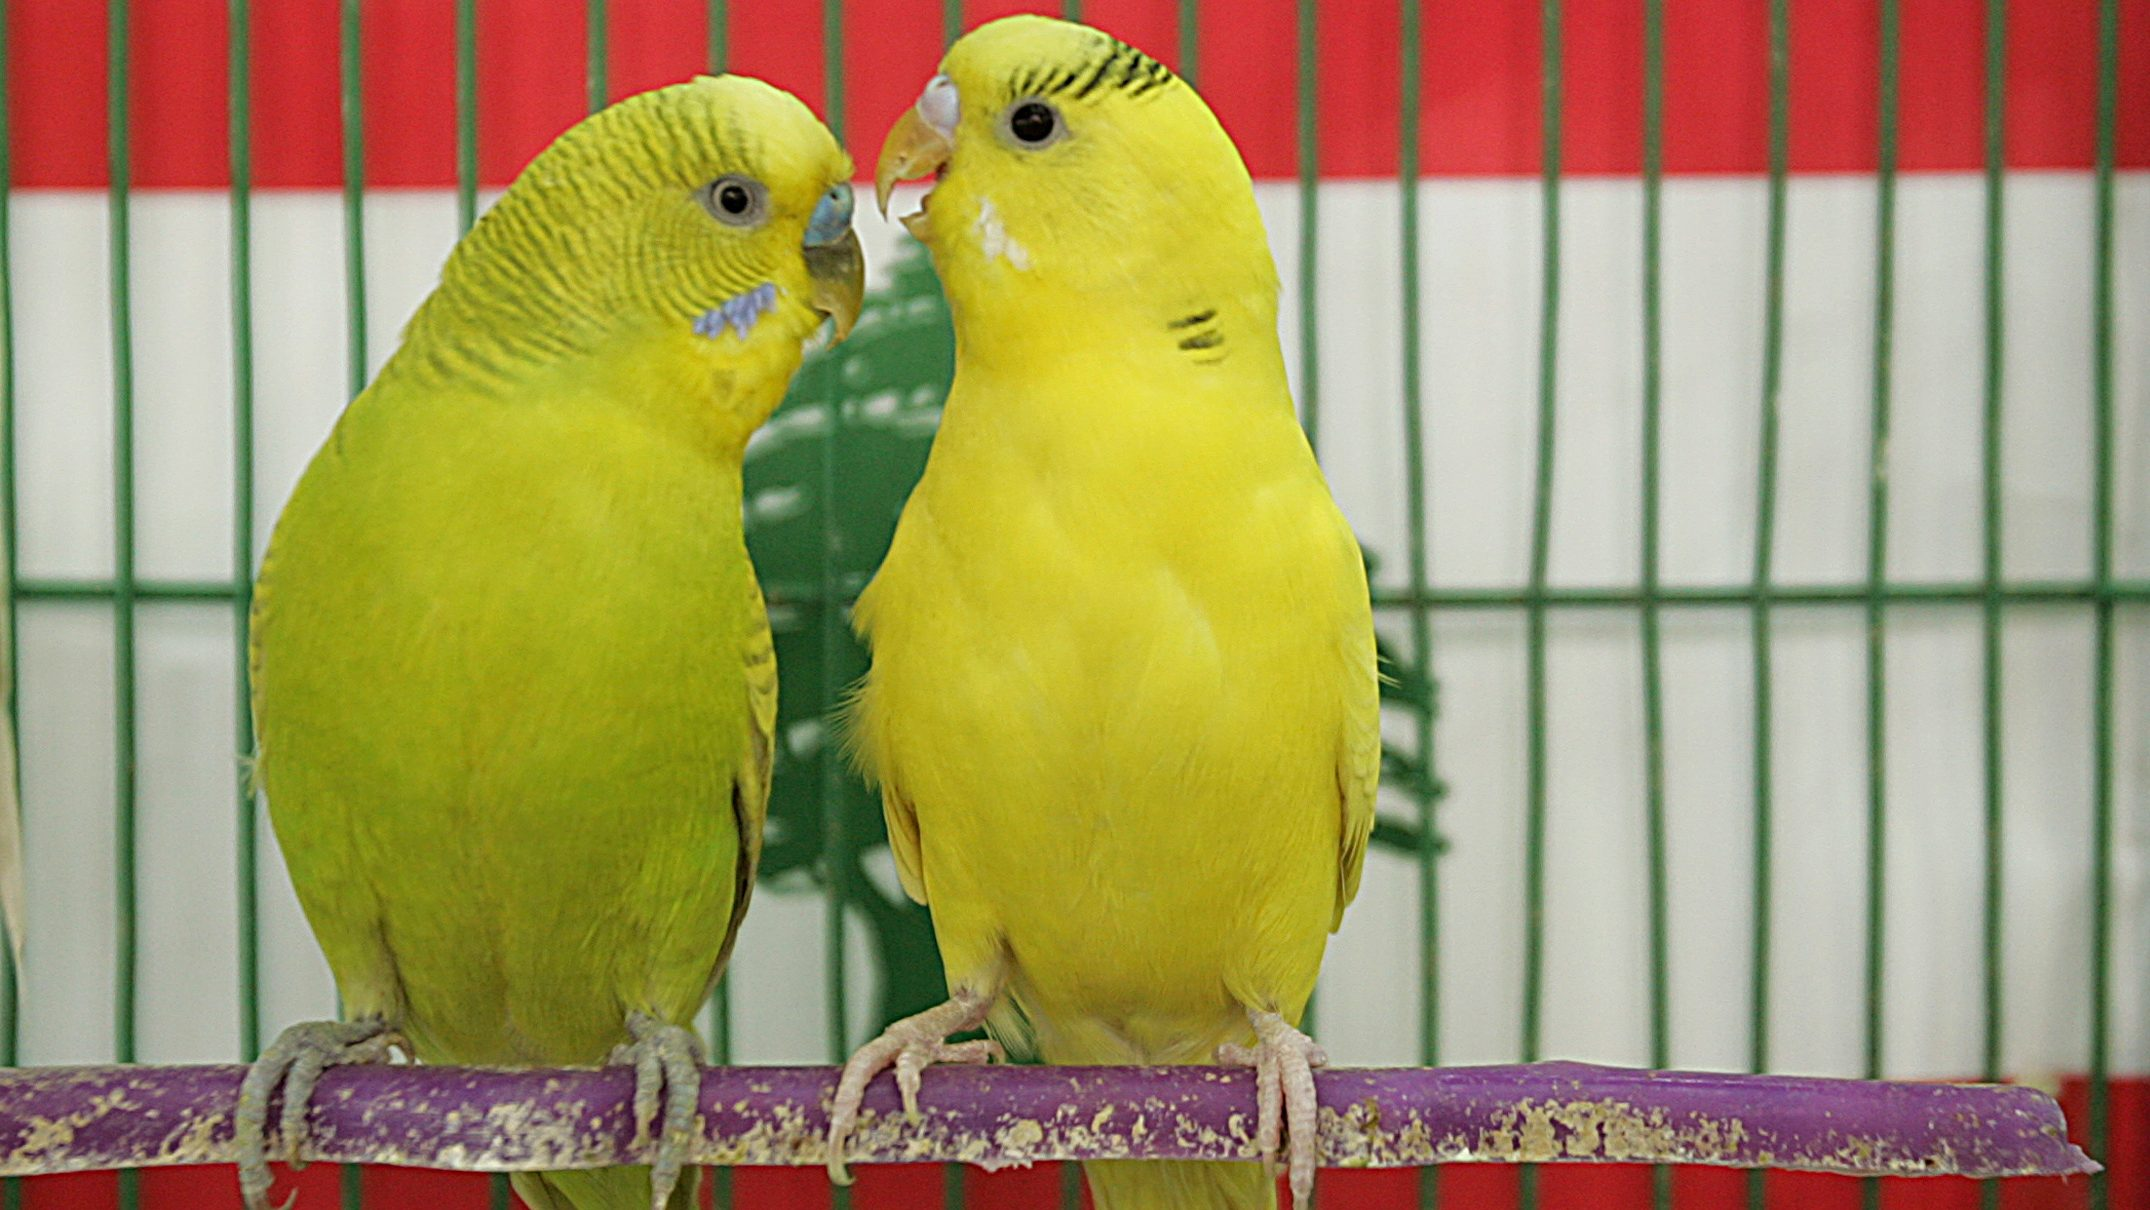 Budgerigar birds in a cage